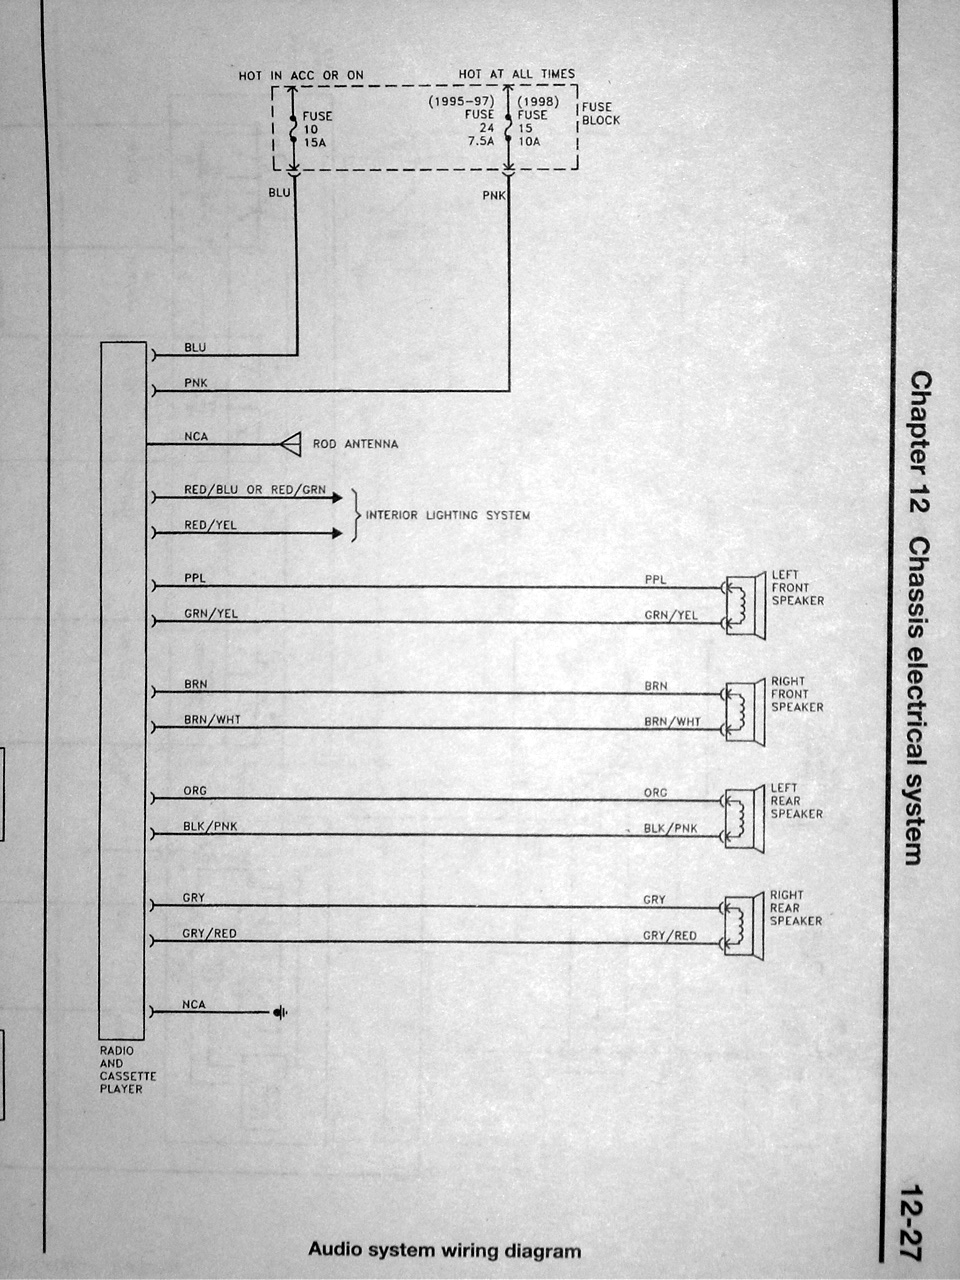 2006 nissan xterra stereo wiring diagram how to draw ishikawa radio 2003 sentra schema diagram06 data oreo